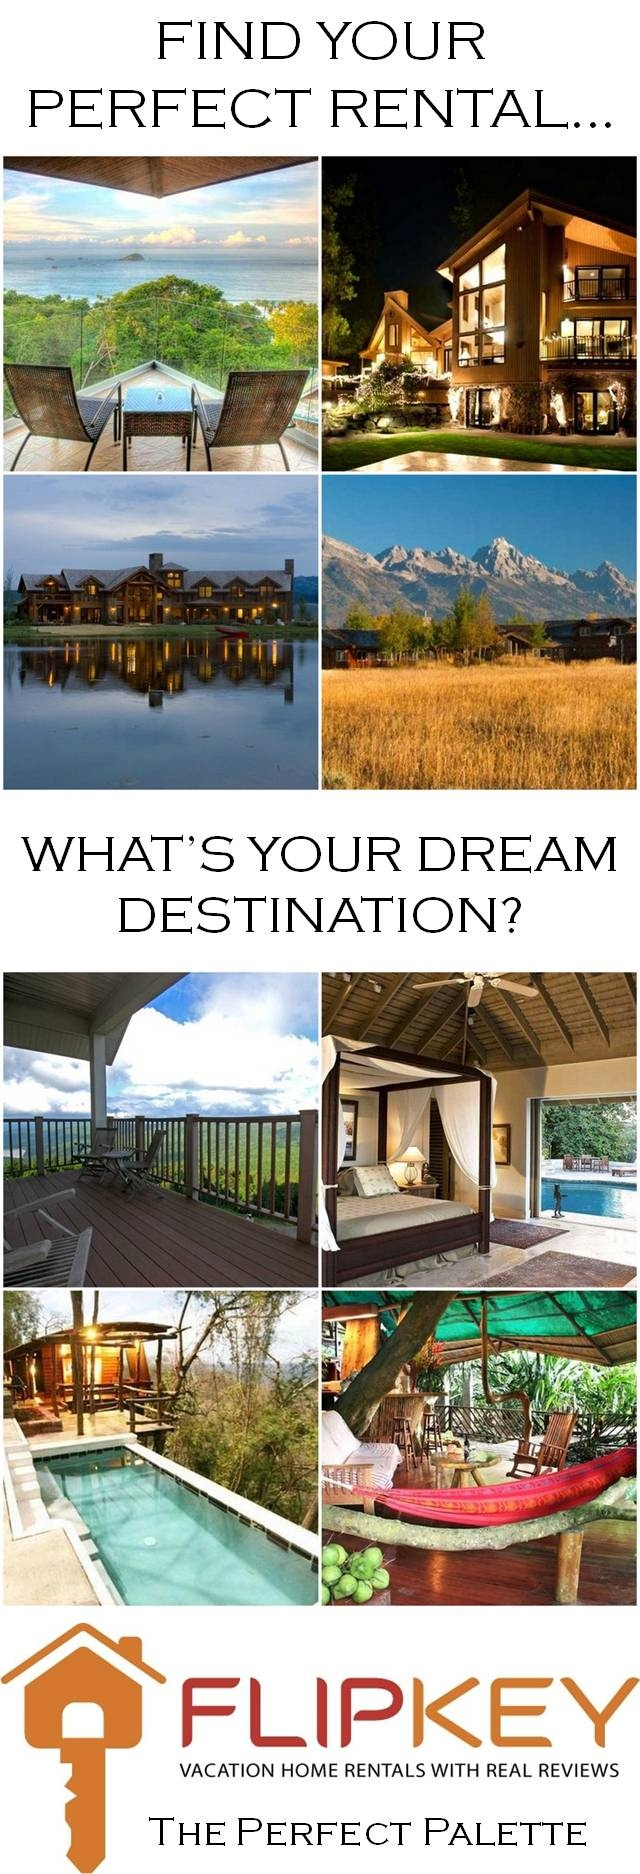 Find the perfect rental for your next vacation, destination wedding or honeymoon! So many beautiful locations to choose from! http://www.theperfectpalette.com/2012/11/sponsored-post-flipkey-wedding.html